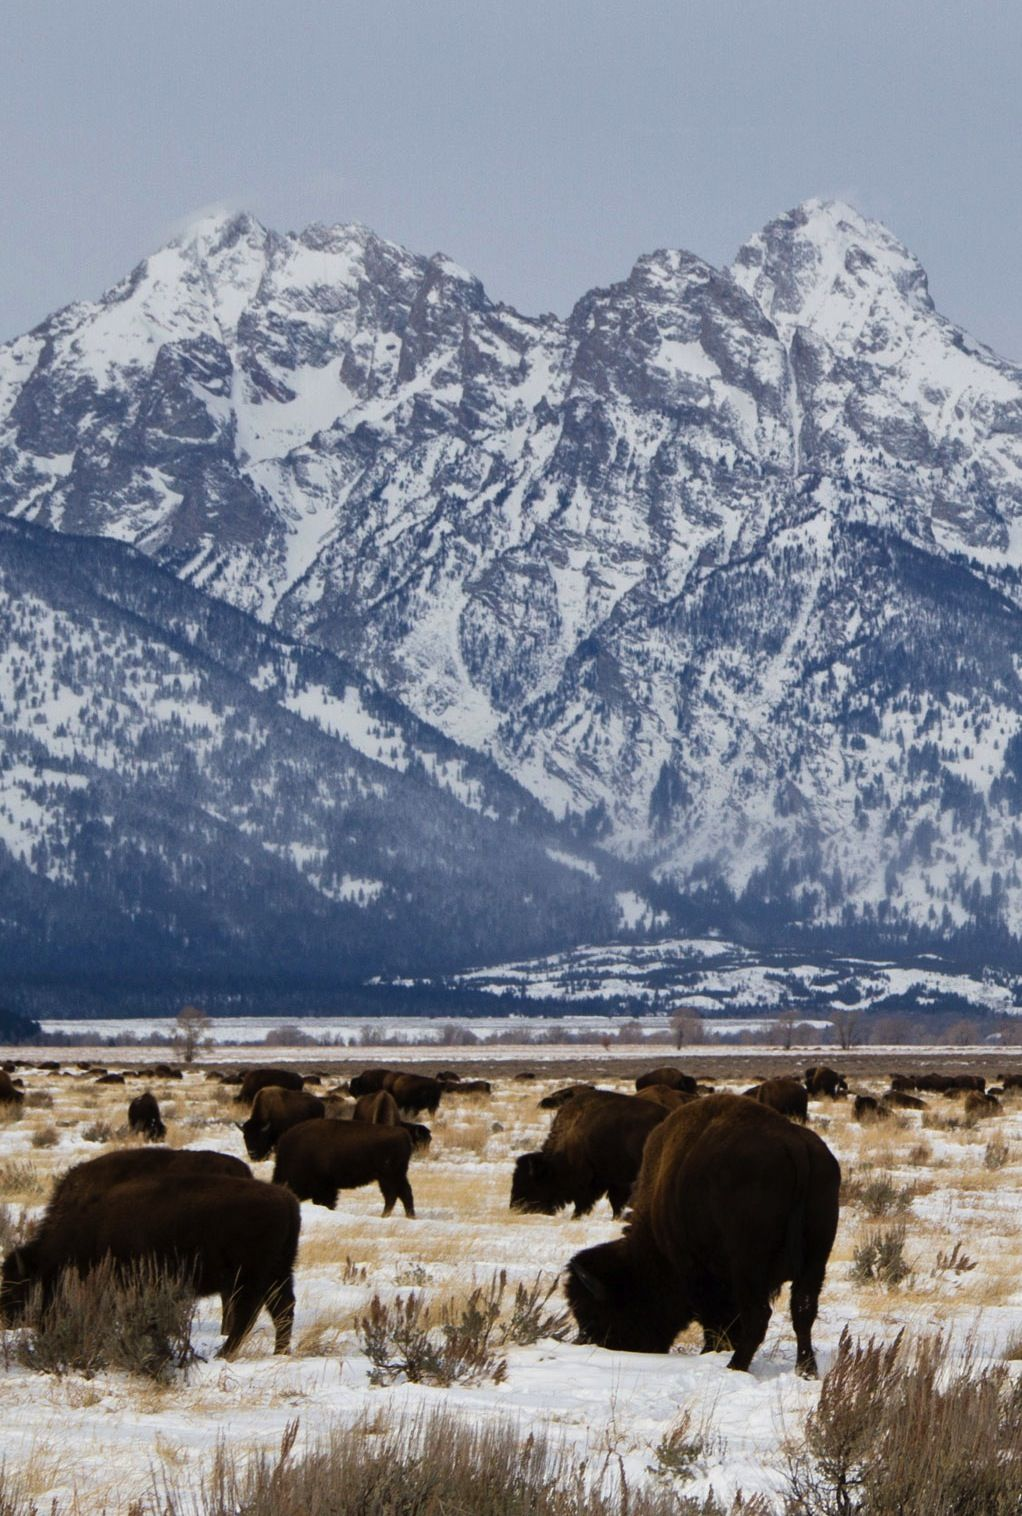 Jackson Hole, WY I've been there it's beautiful I can't wait to go back I want to go camping on horseback and look at some properties there to build a log cabin !!